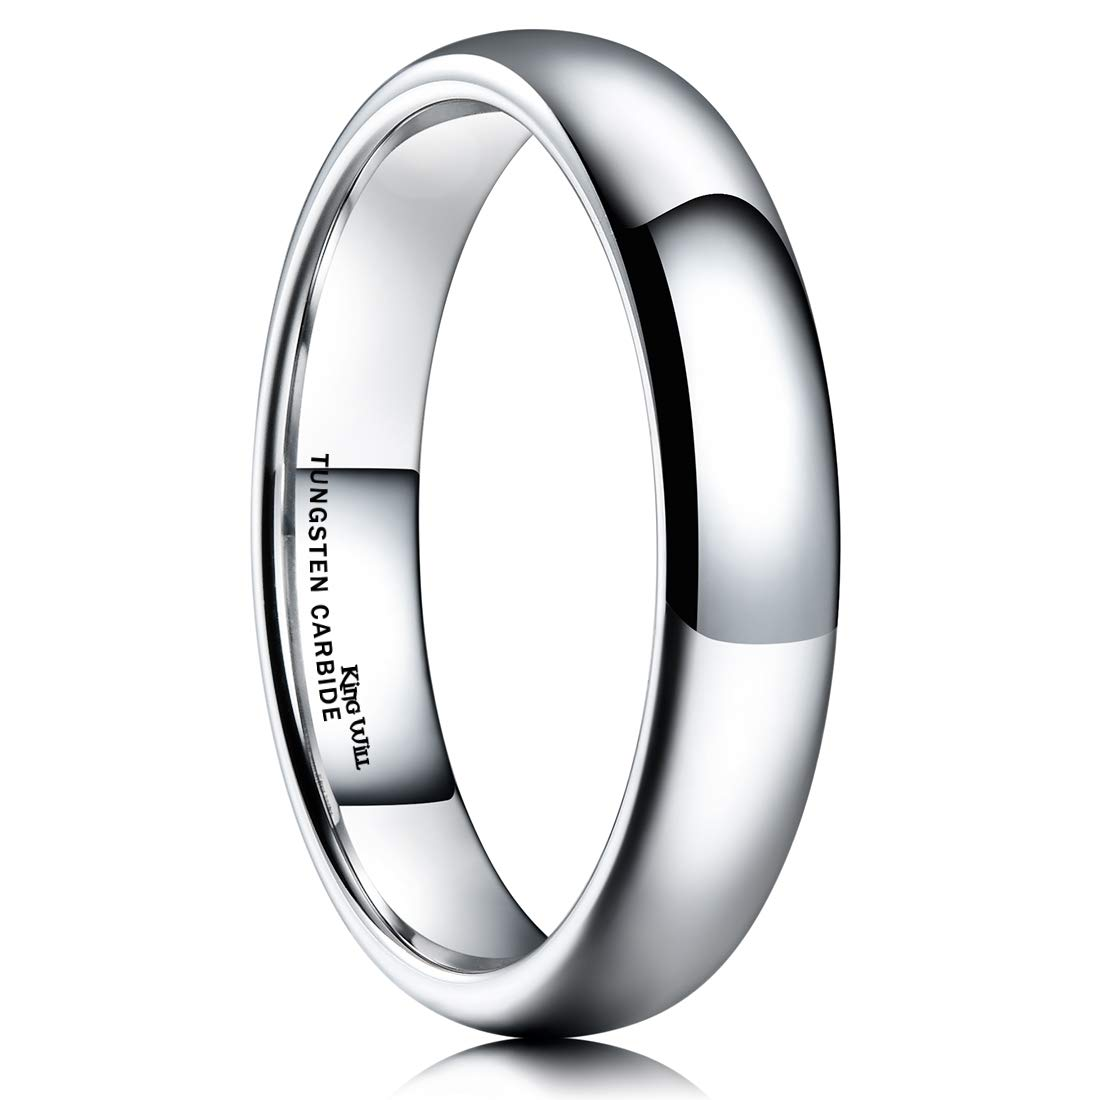 King Will Basic 4mm Classic Polished Comfort Fit Domed Tungsten Metal Ring Wedding Band 9.5